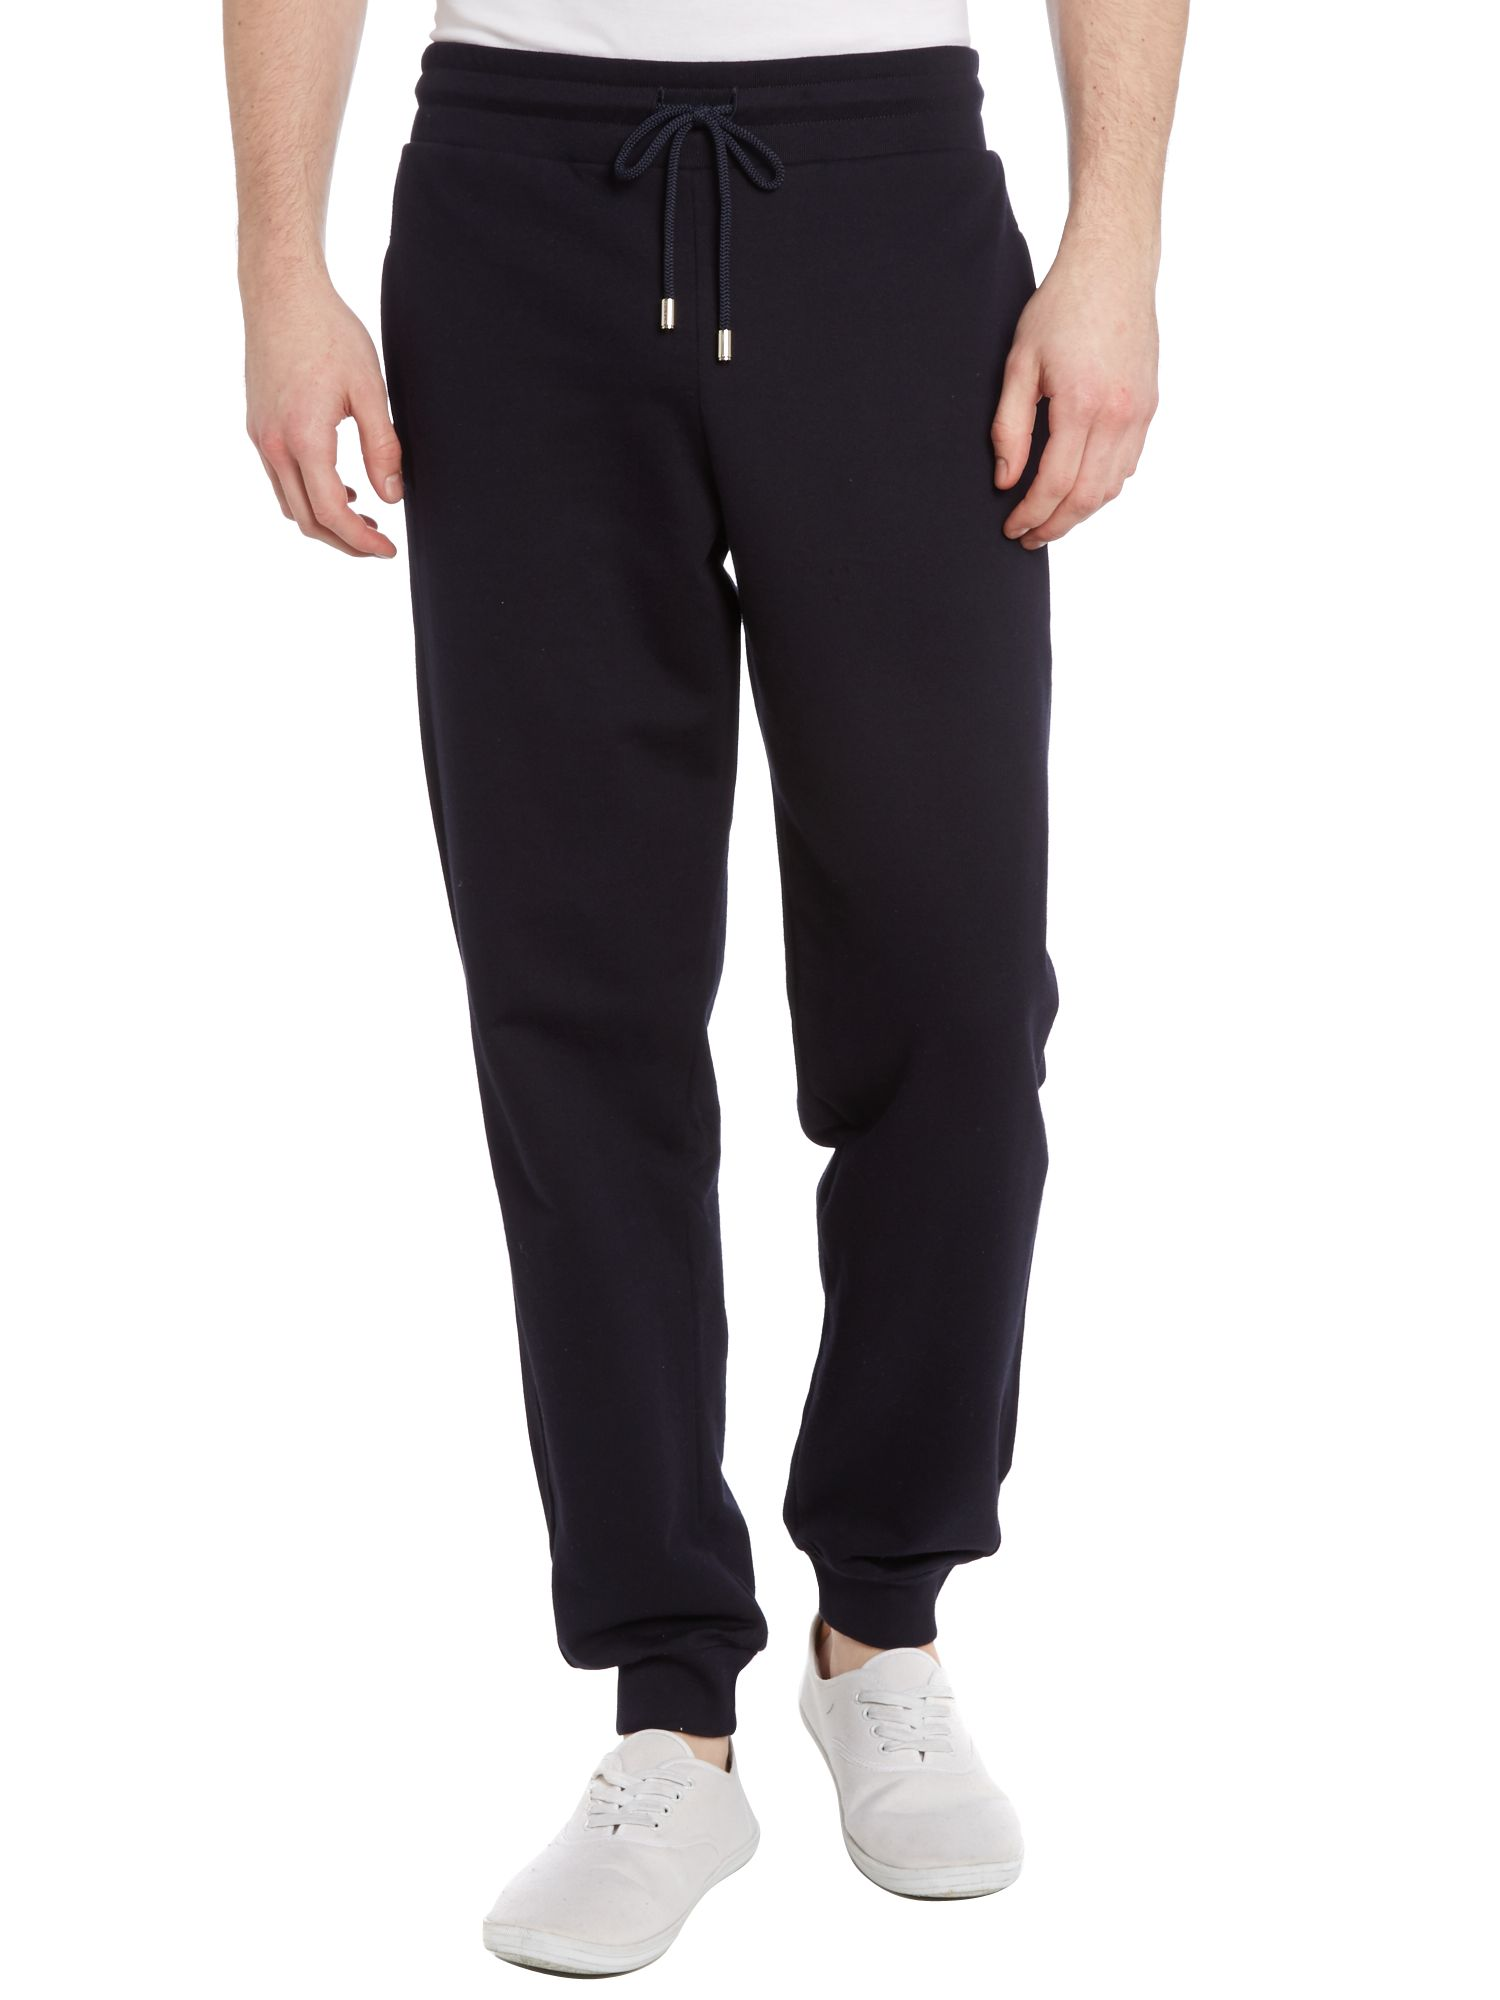 Cuffed sweat pant